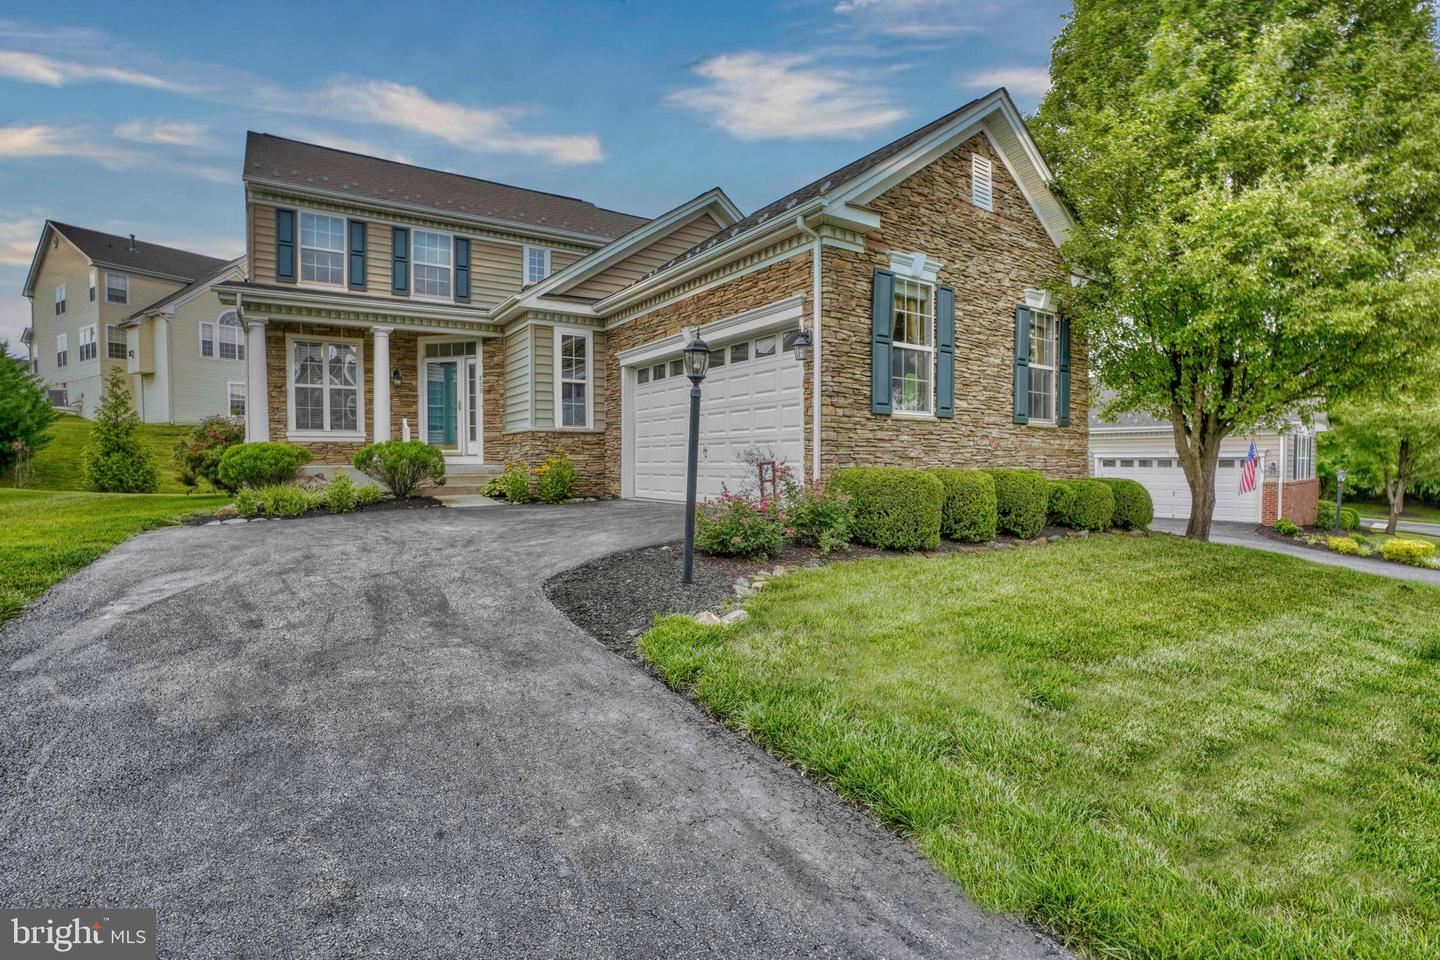 233 SMARTY JONES TER, Havre de Grace, MD 21078 - MLS#: MDHR258938